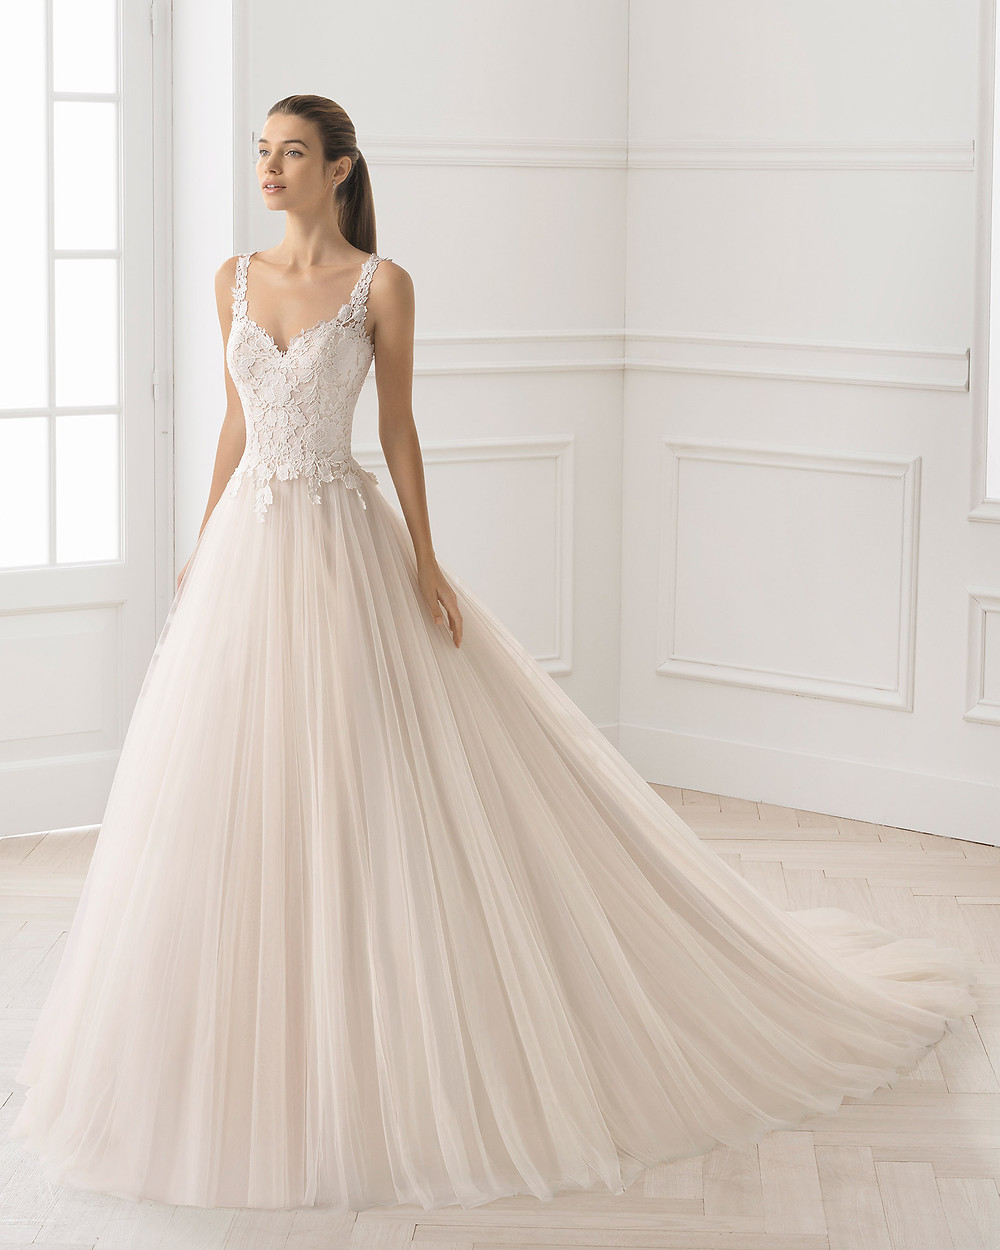 An Aire Barcelona 2020 ivory lace and tulle ball gown wedding dress with straps